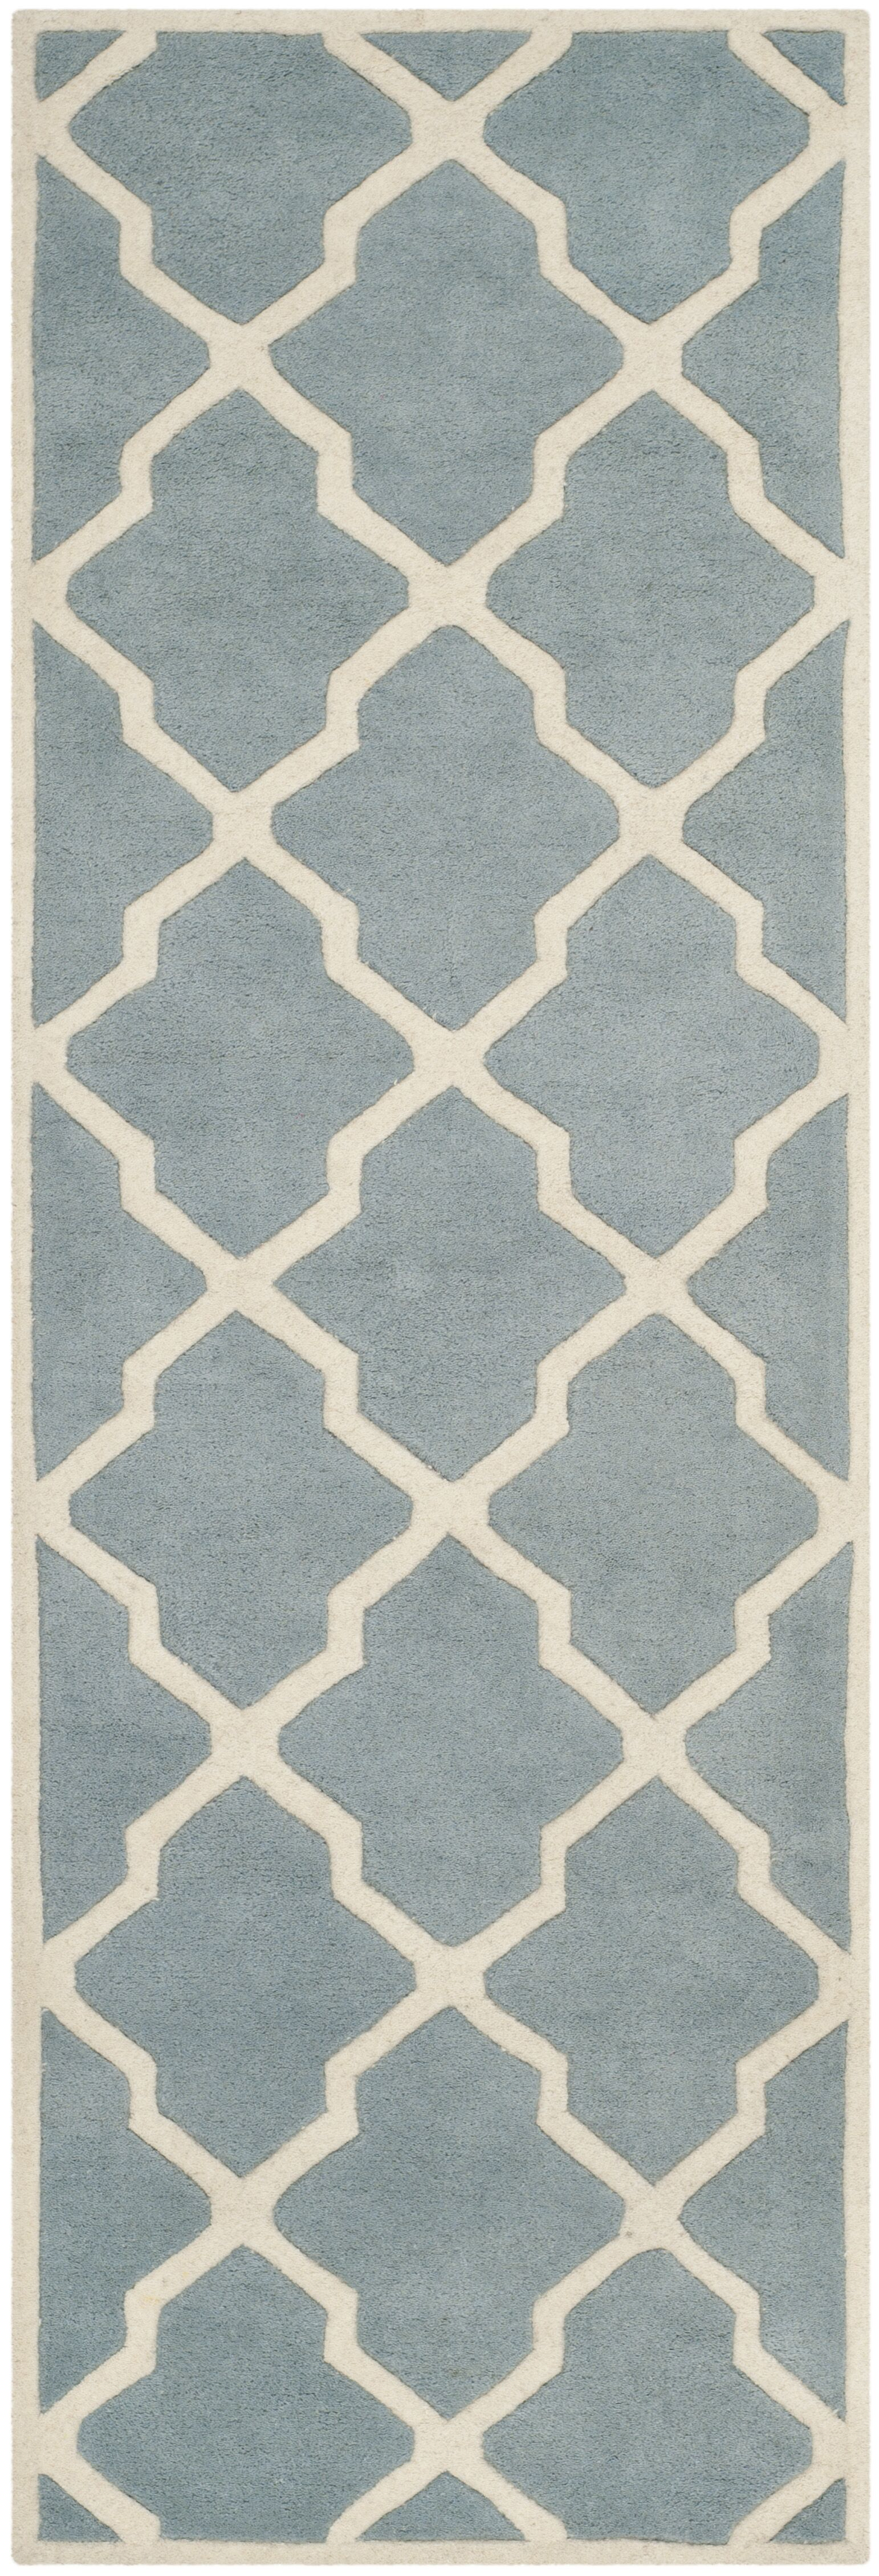 Wilkin Hand-Tufted Wool Blue/Ivory Area Rug Rug Size: Runner 2'3